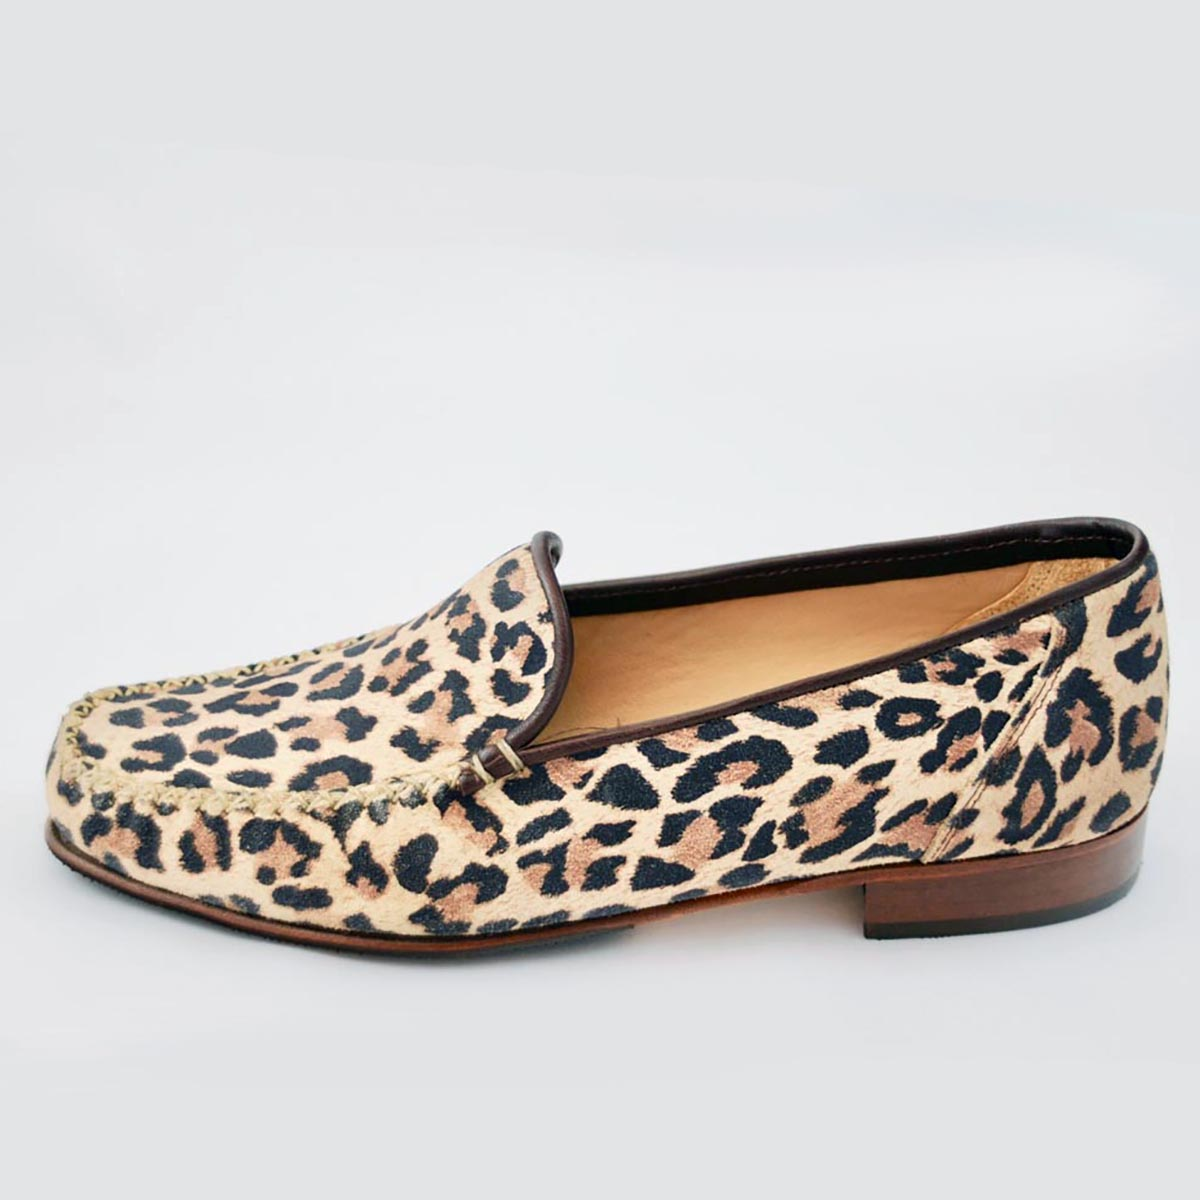 HB Italia - Lucy Leopard Loafer